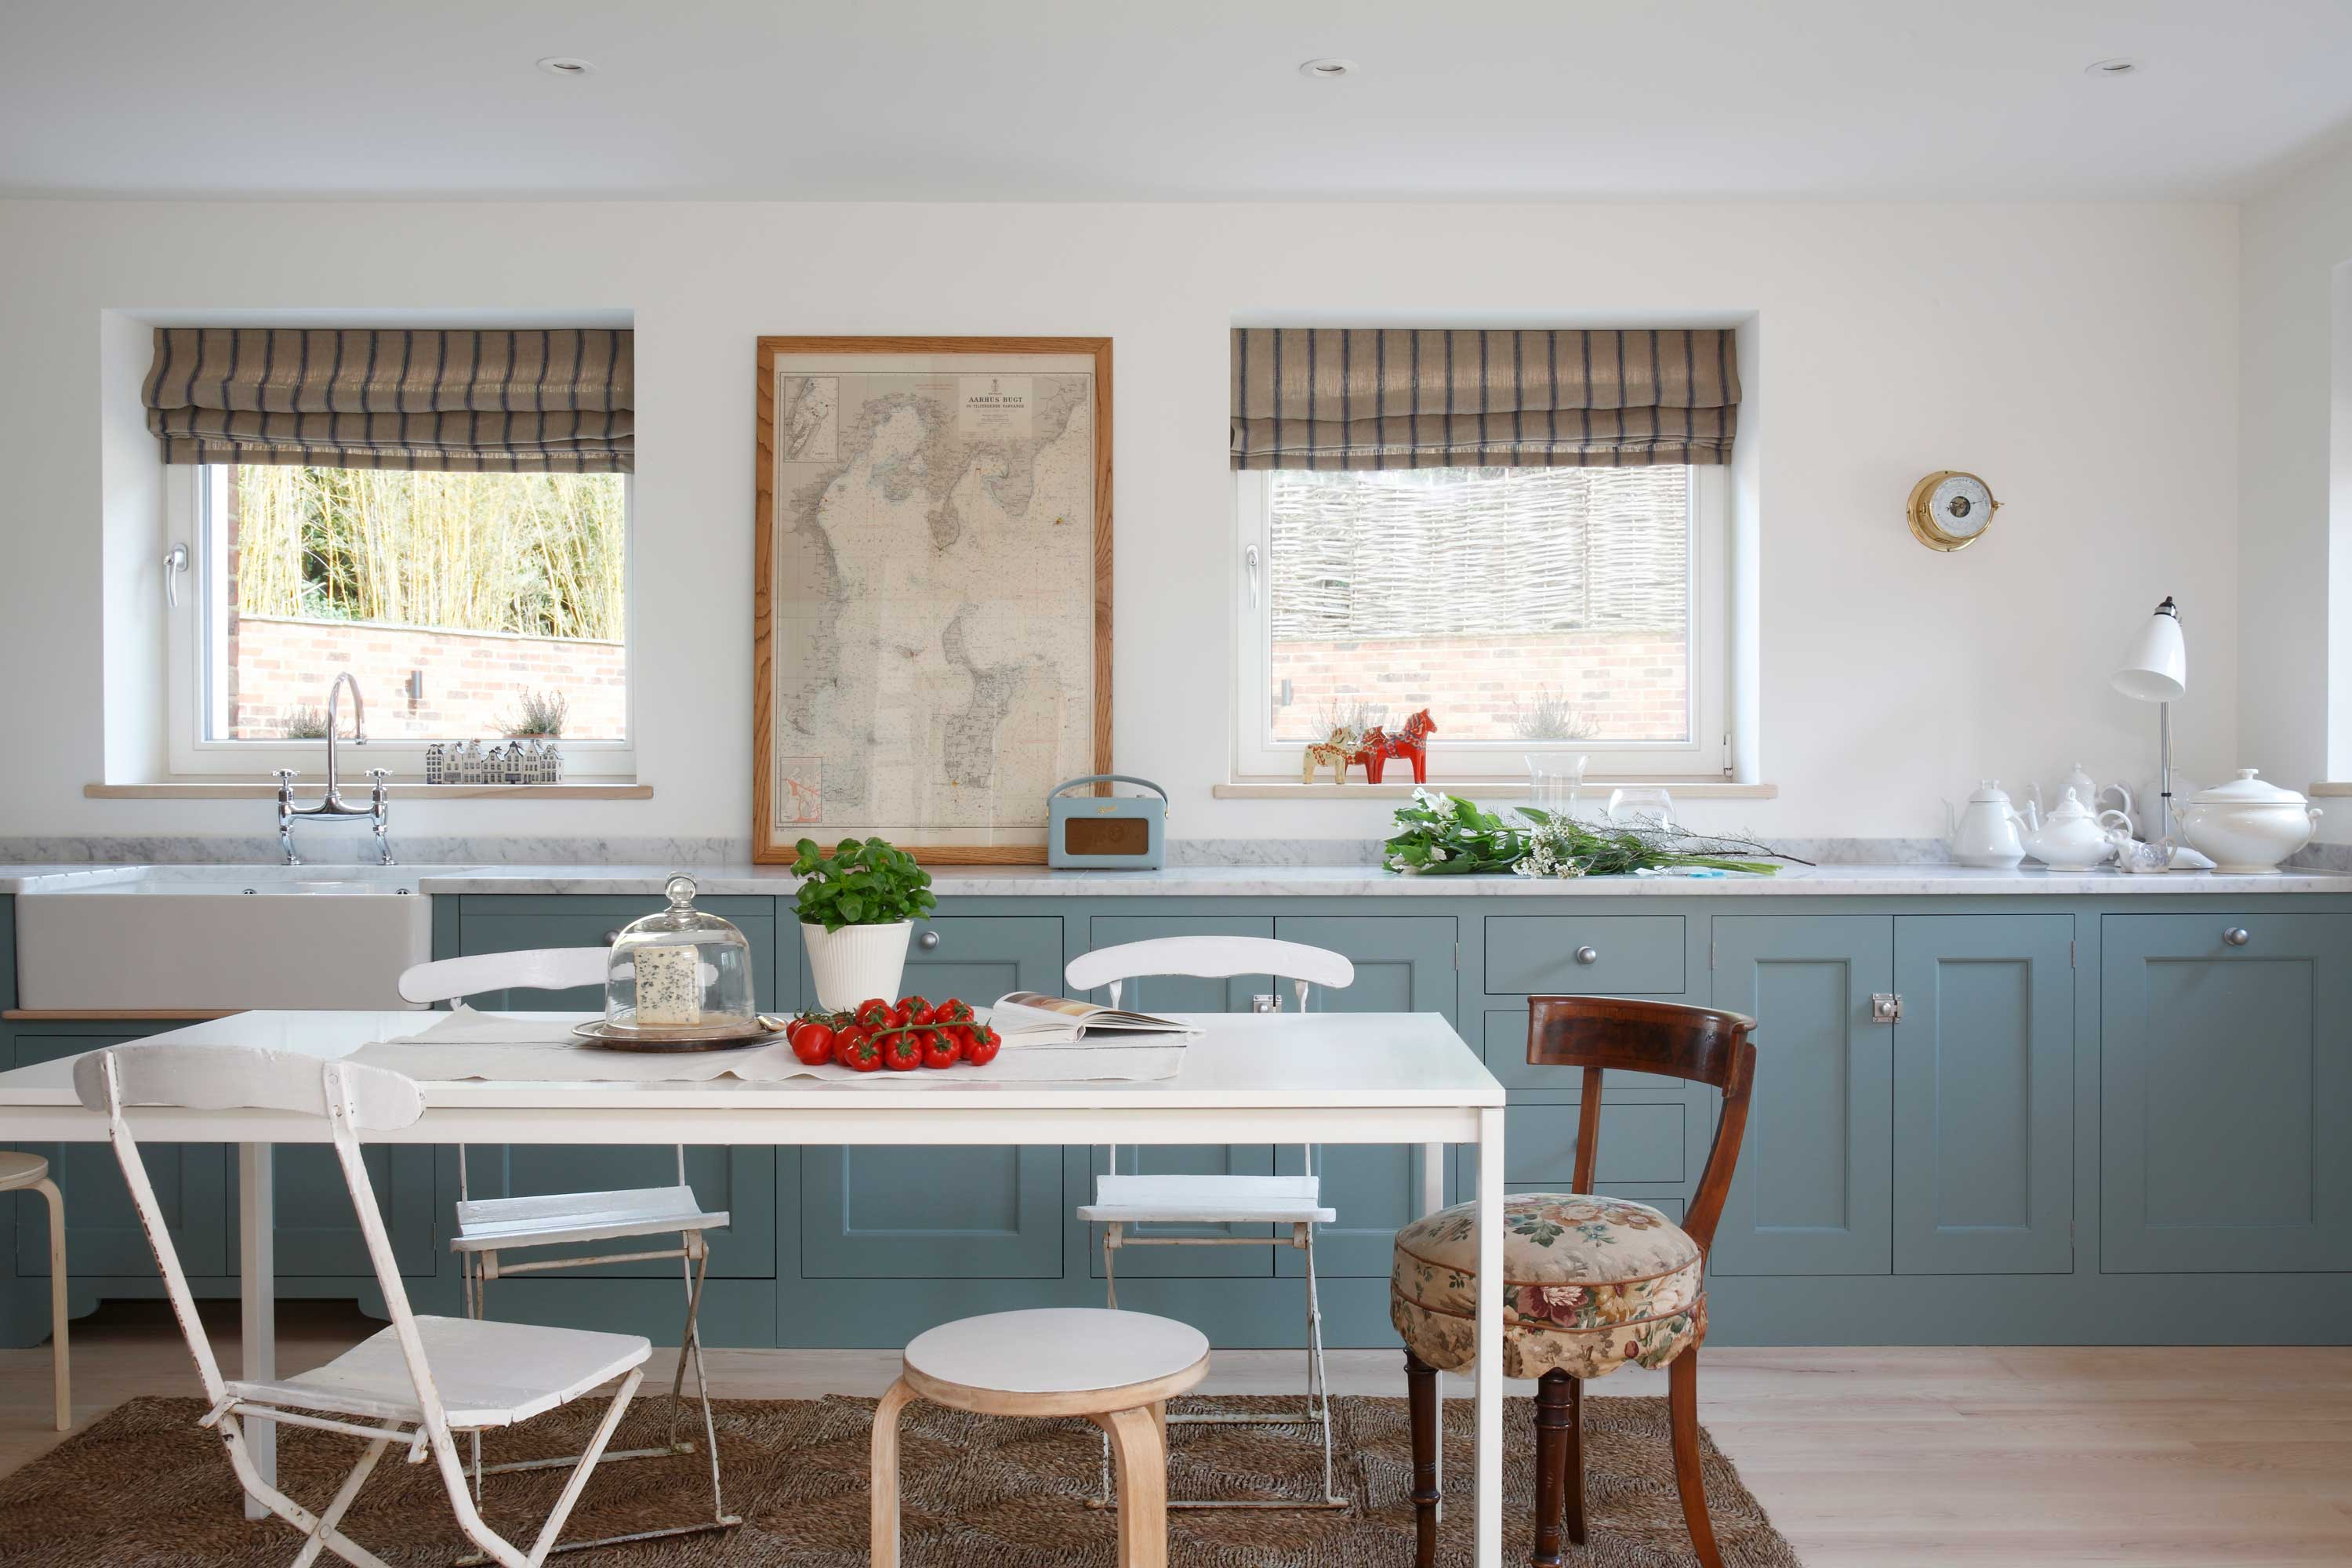 We Were Blown Away By The Design And Quality Of Cabinetry Kitchen Is Exactly What Wanted